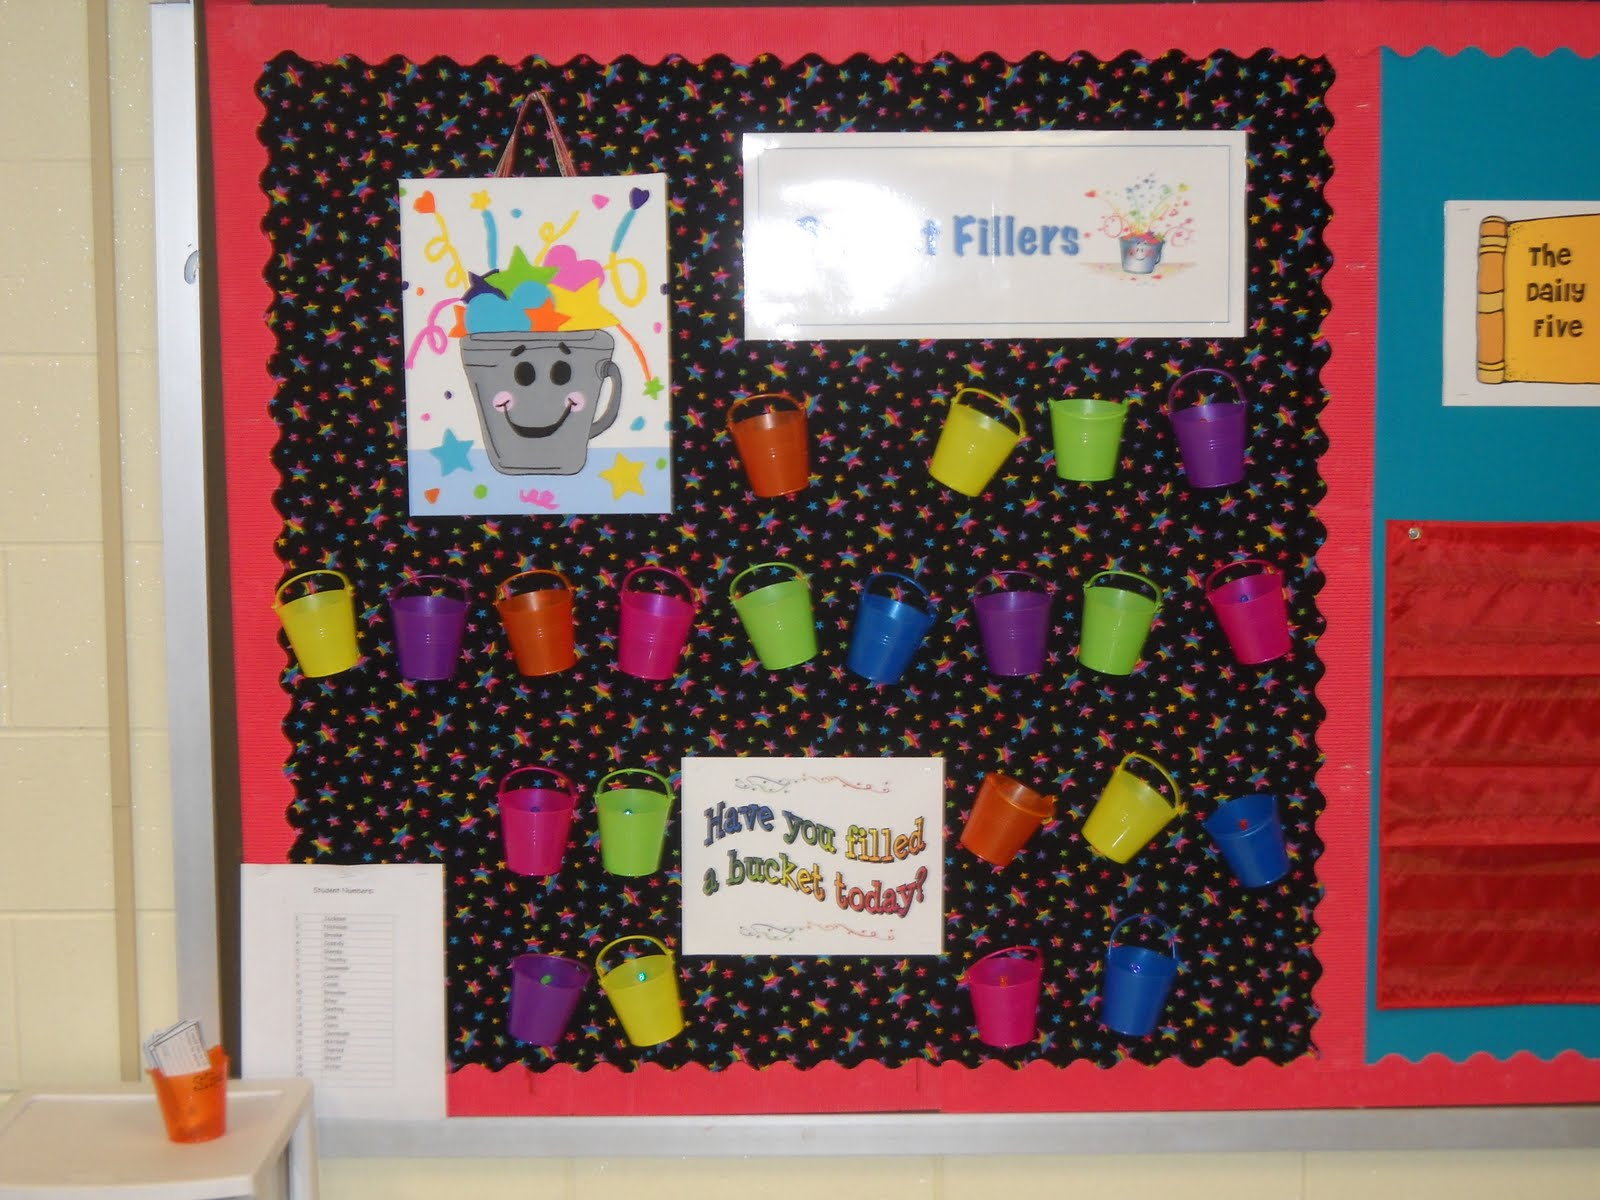 The Teaching Bug Have You Filled Your Bucket Today